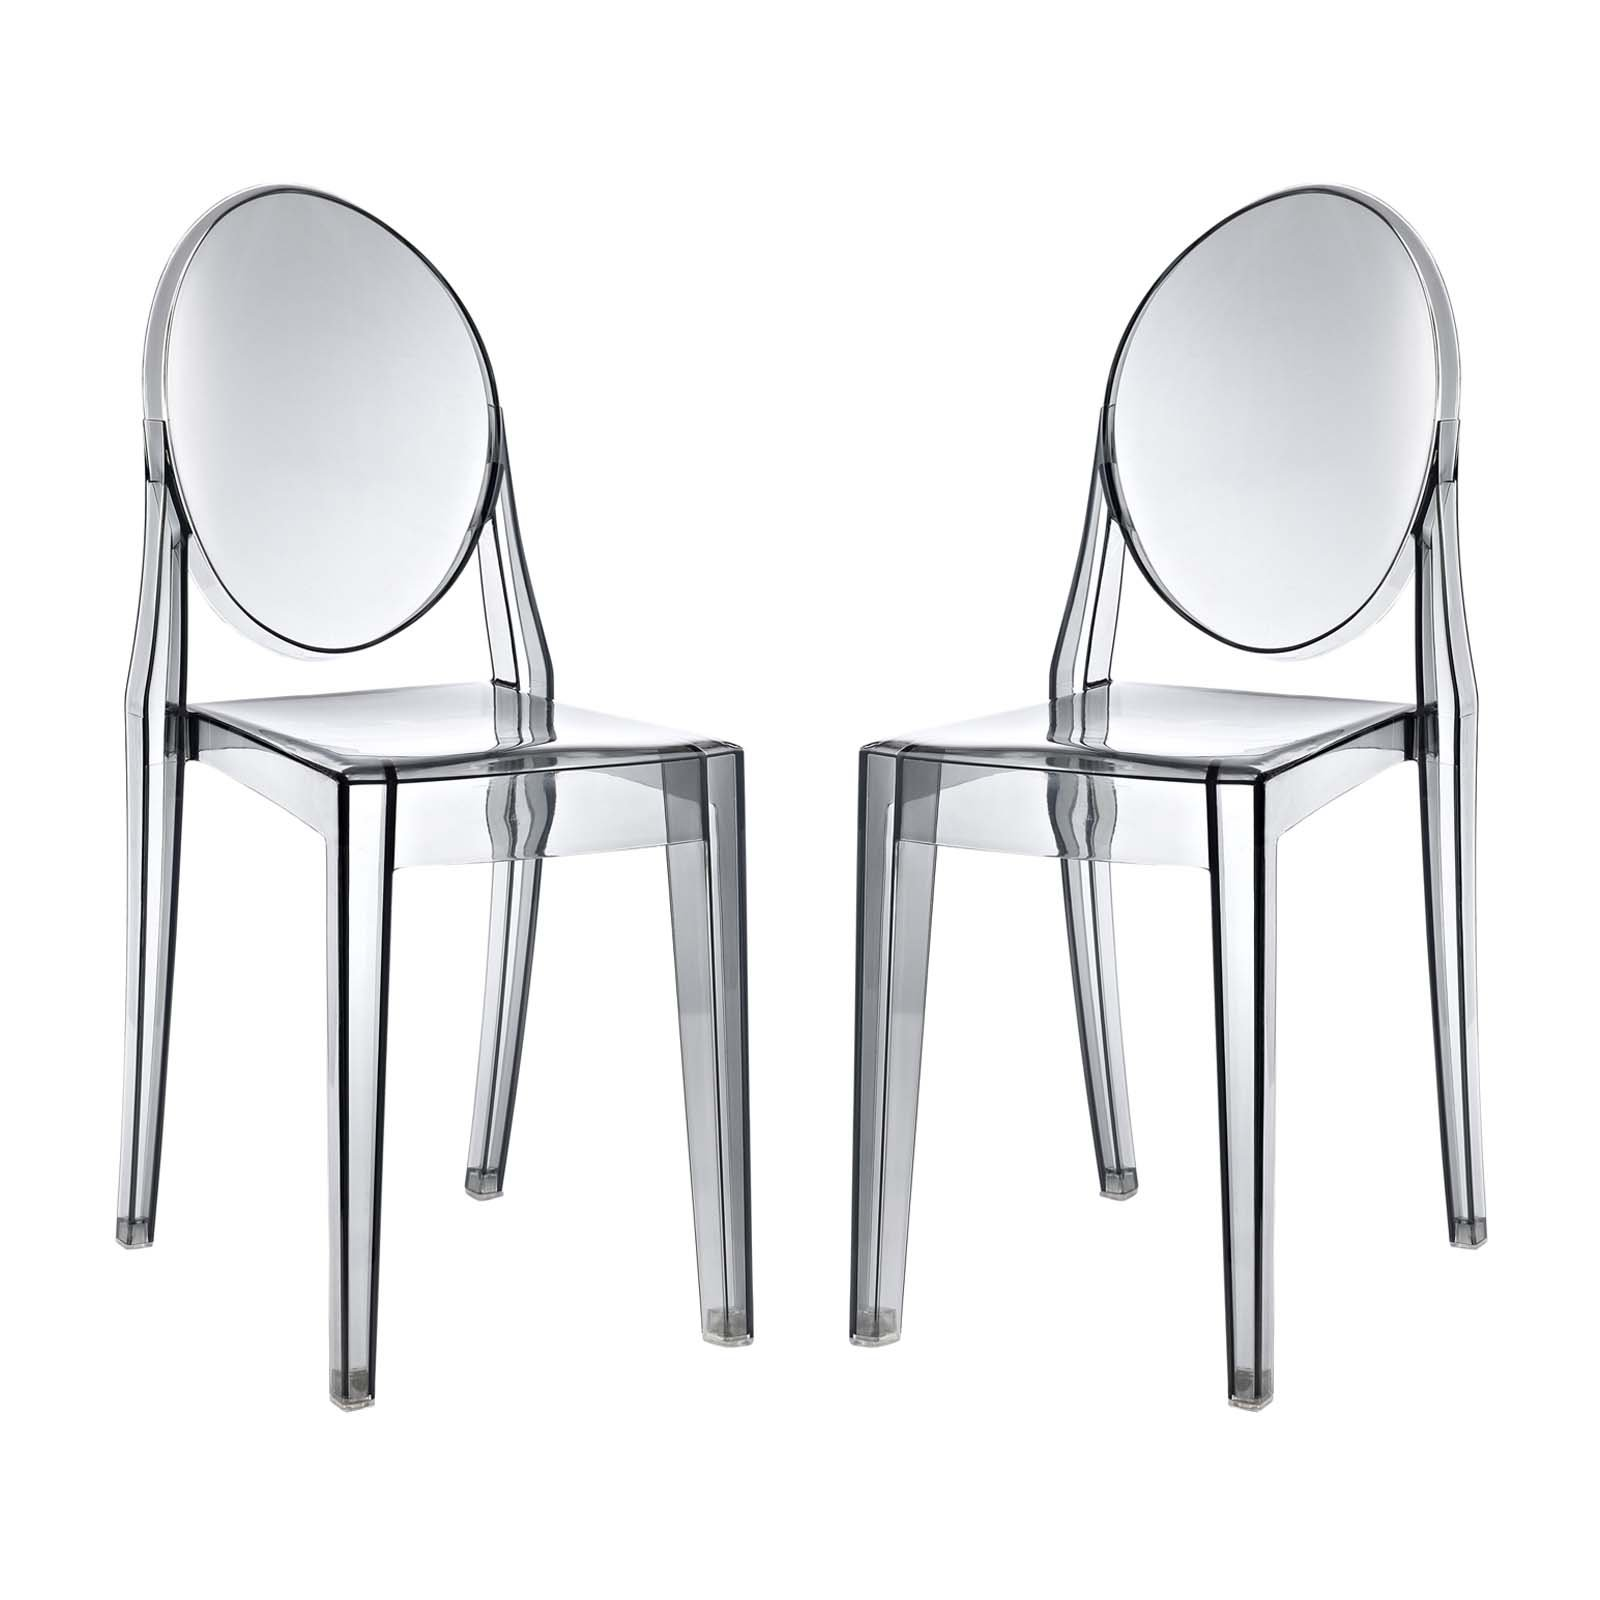 Modway Casper Modern Acrylic Dining Side Chairs in Smoke - Set of 2 by Modway